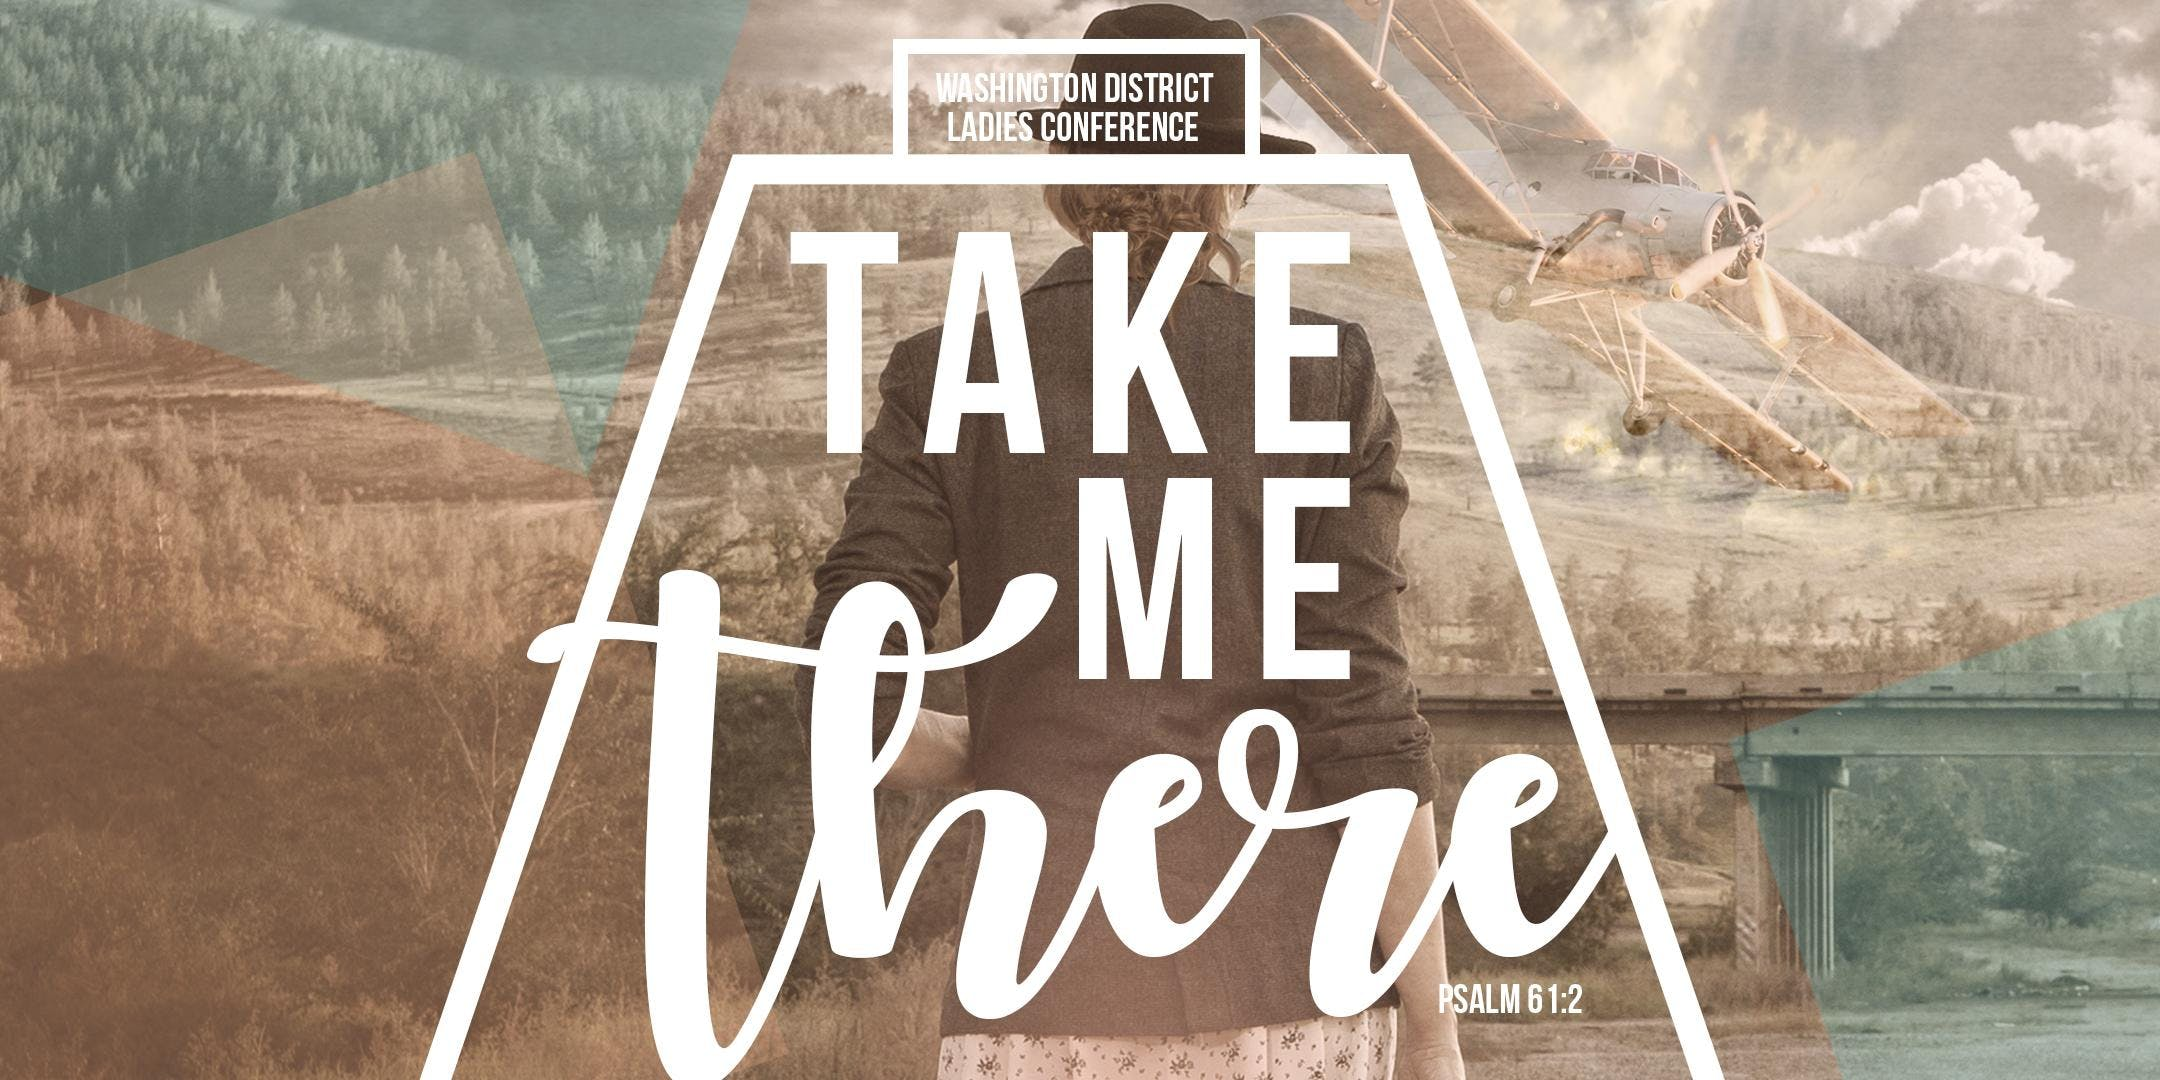 Take Me There - WA District Ladies Conference 2018